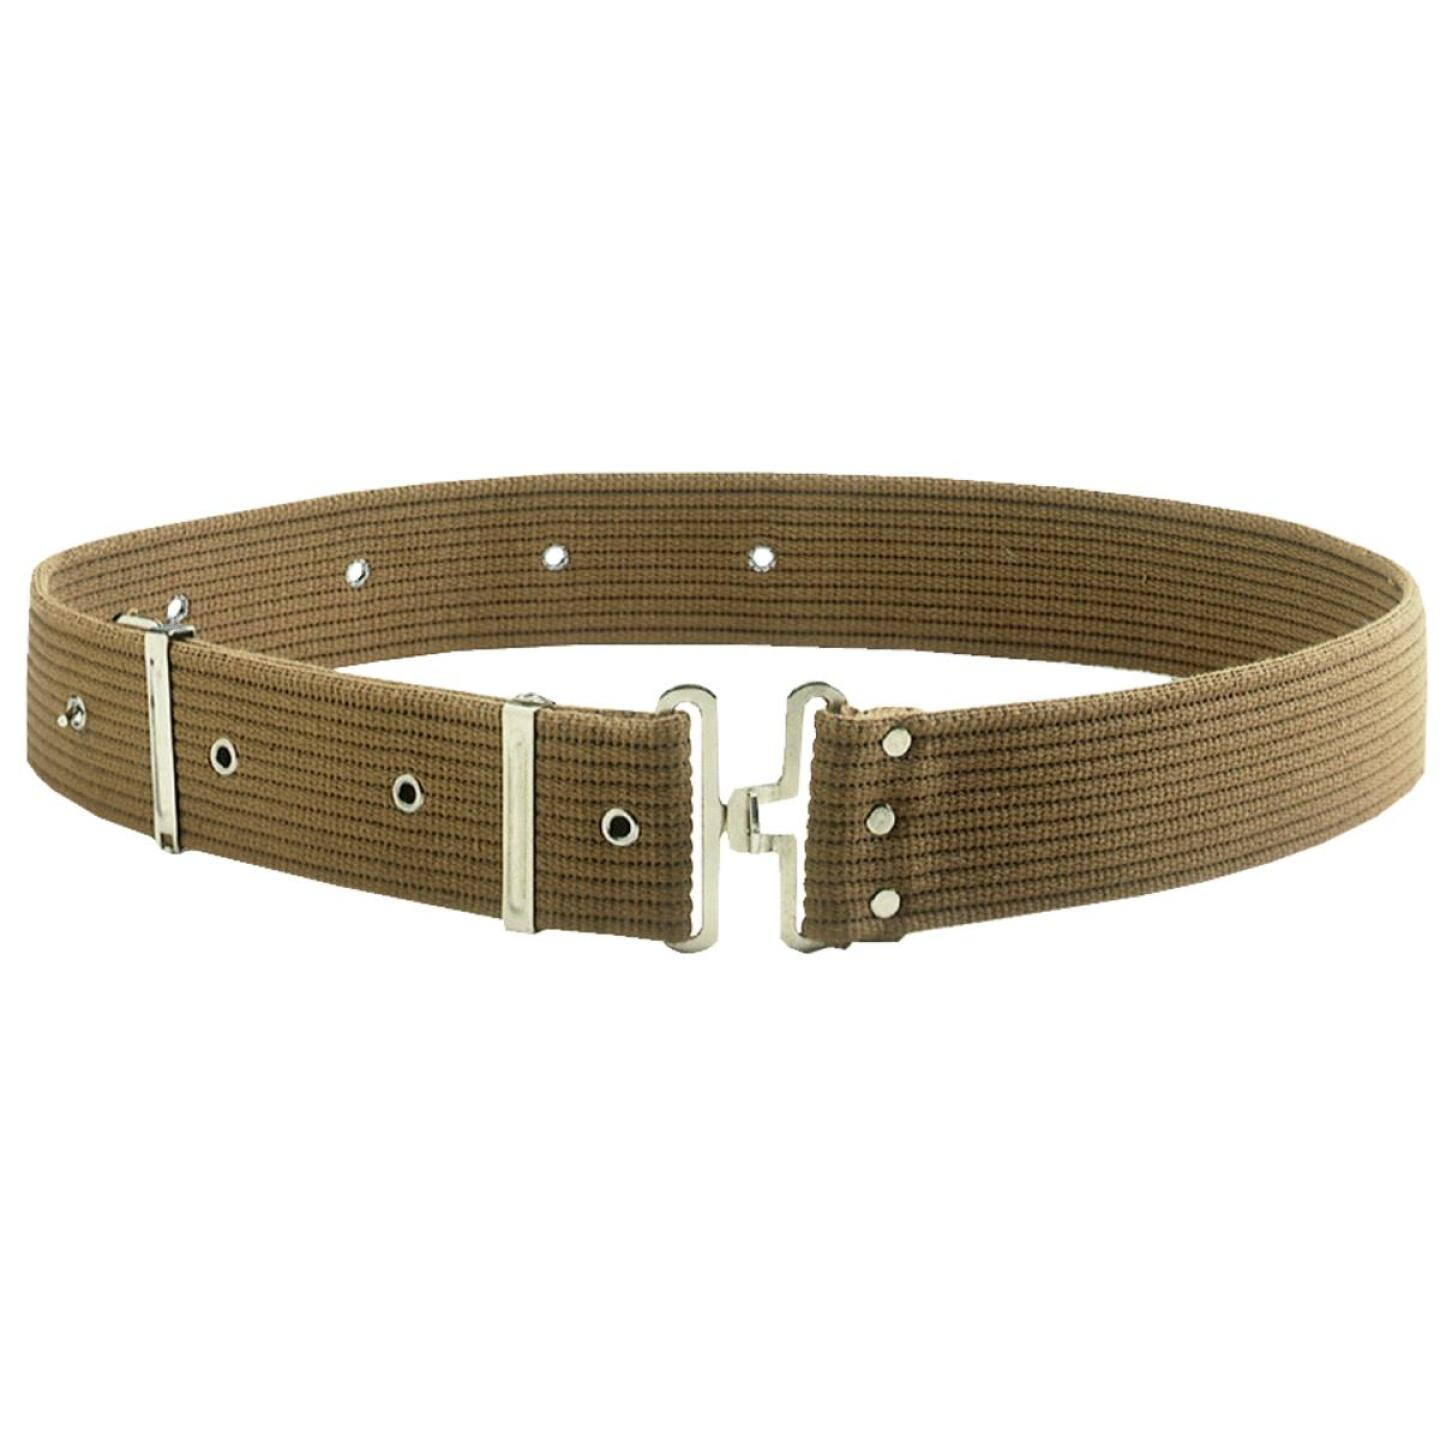 CLC Cotton Web Work Belt Image 1